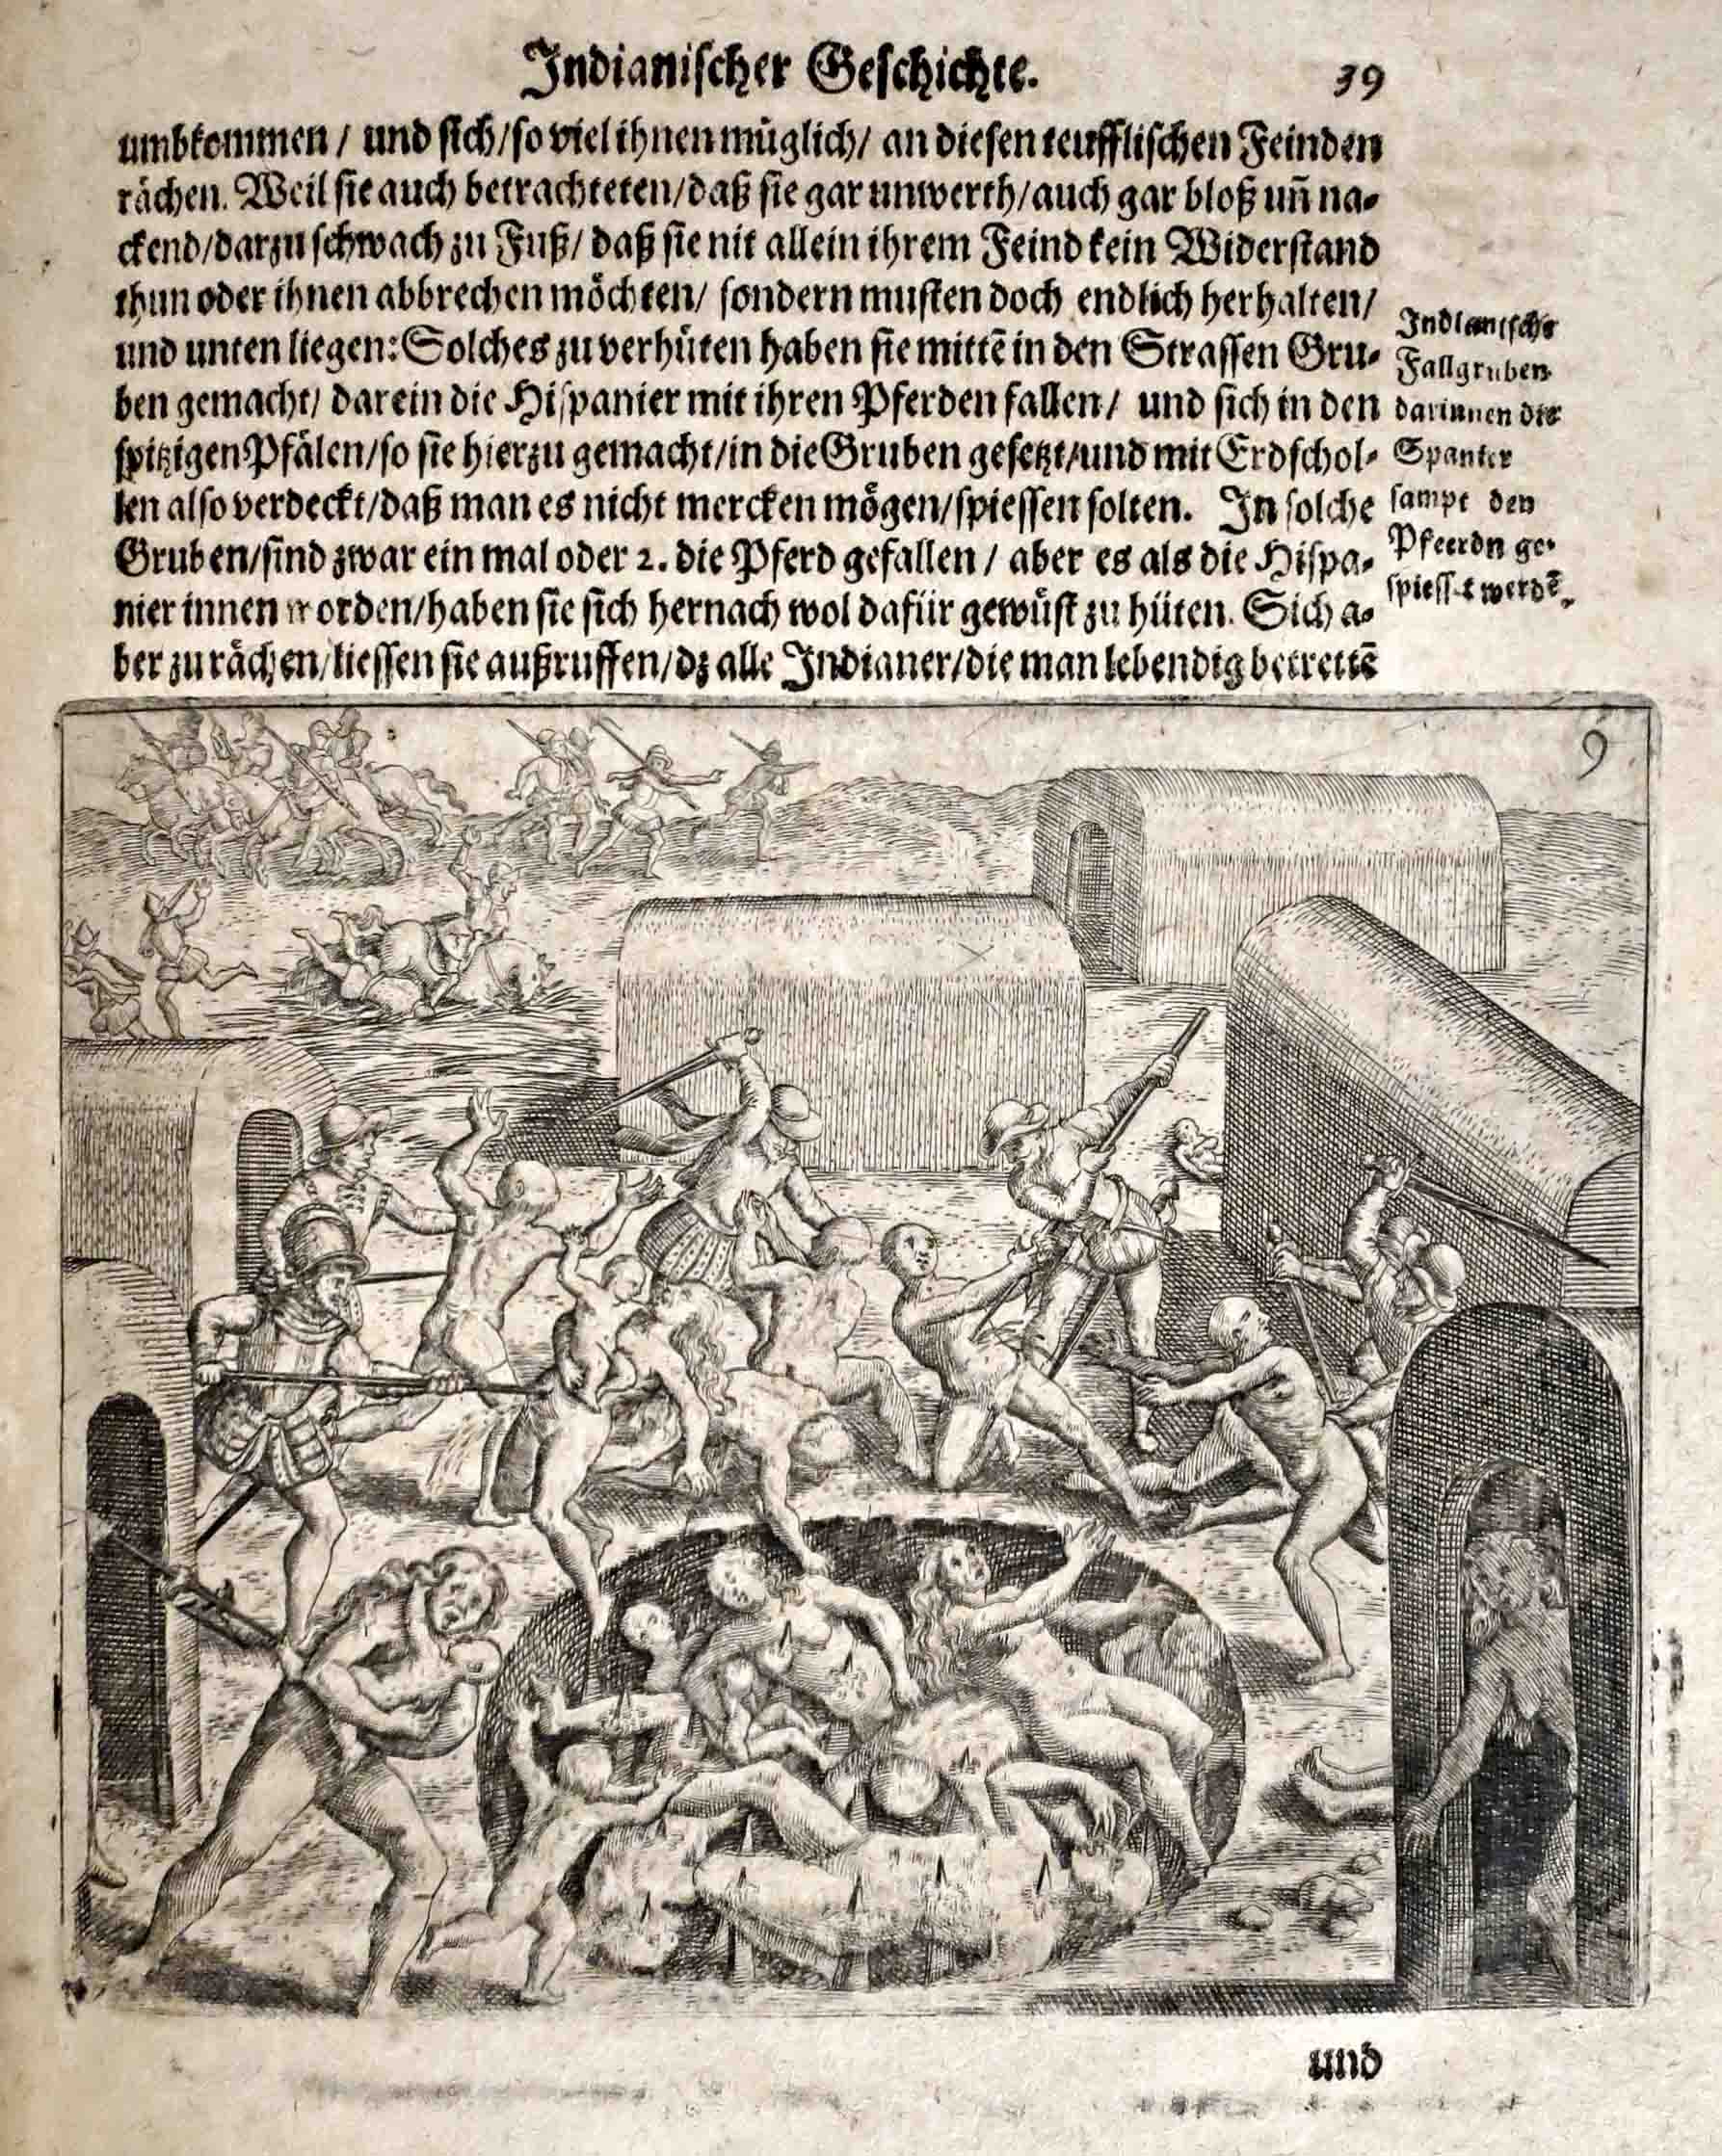 1665_German_edition_of_Las_Casas_03.jpg